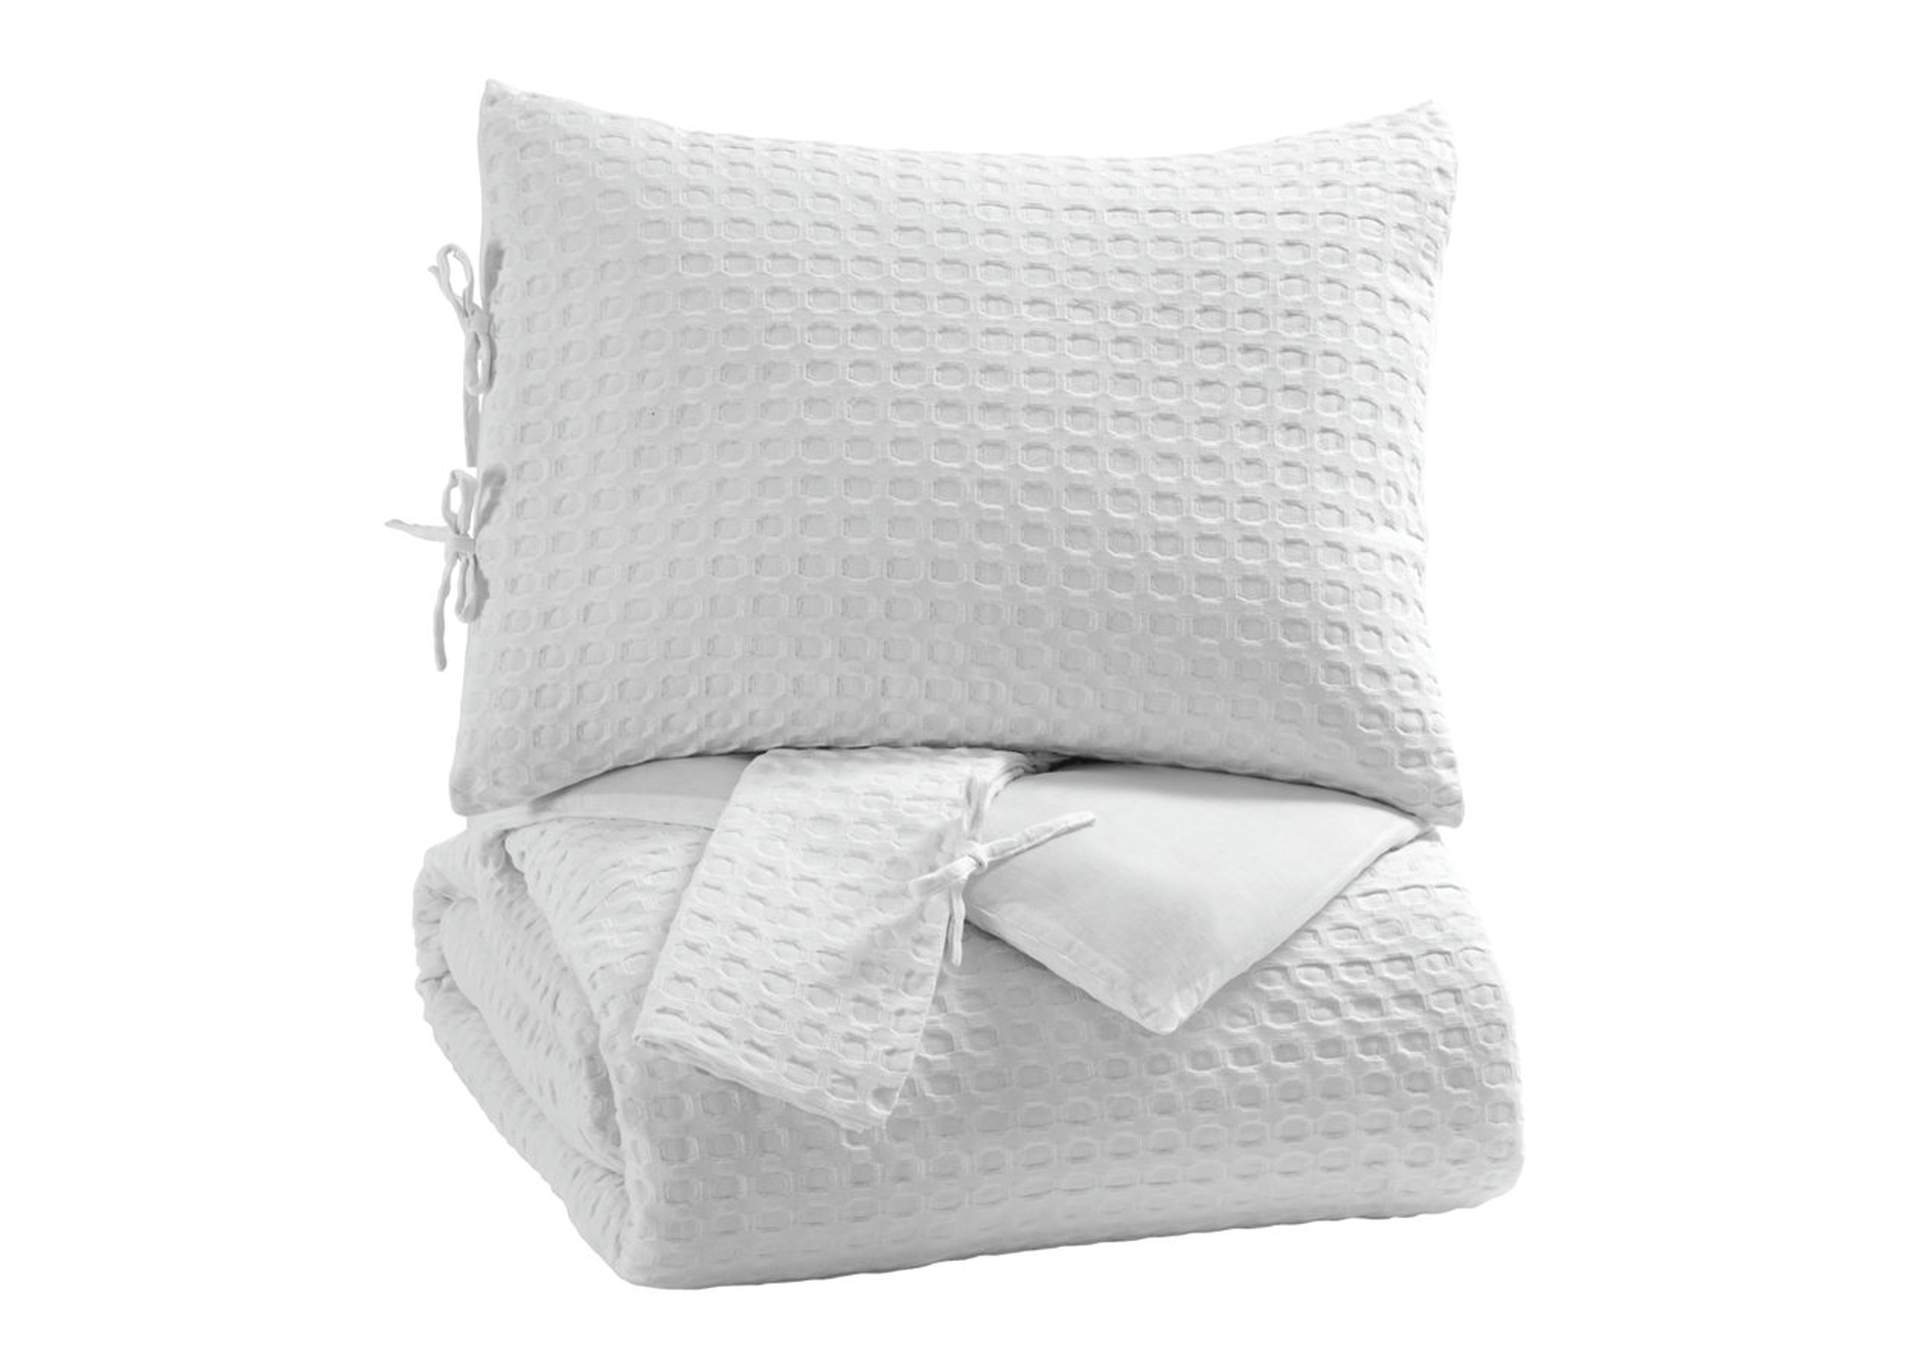 Maurilio White Queen Comforter Set,Signature Design By Ashley